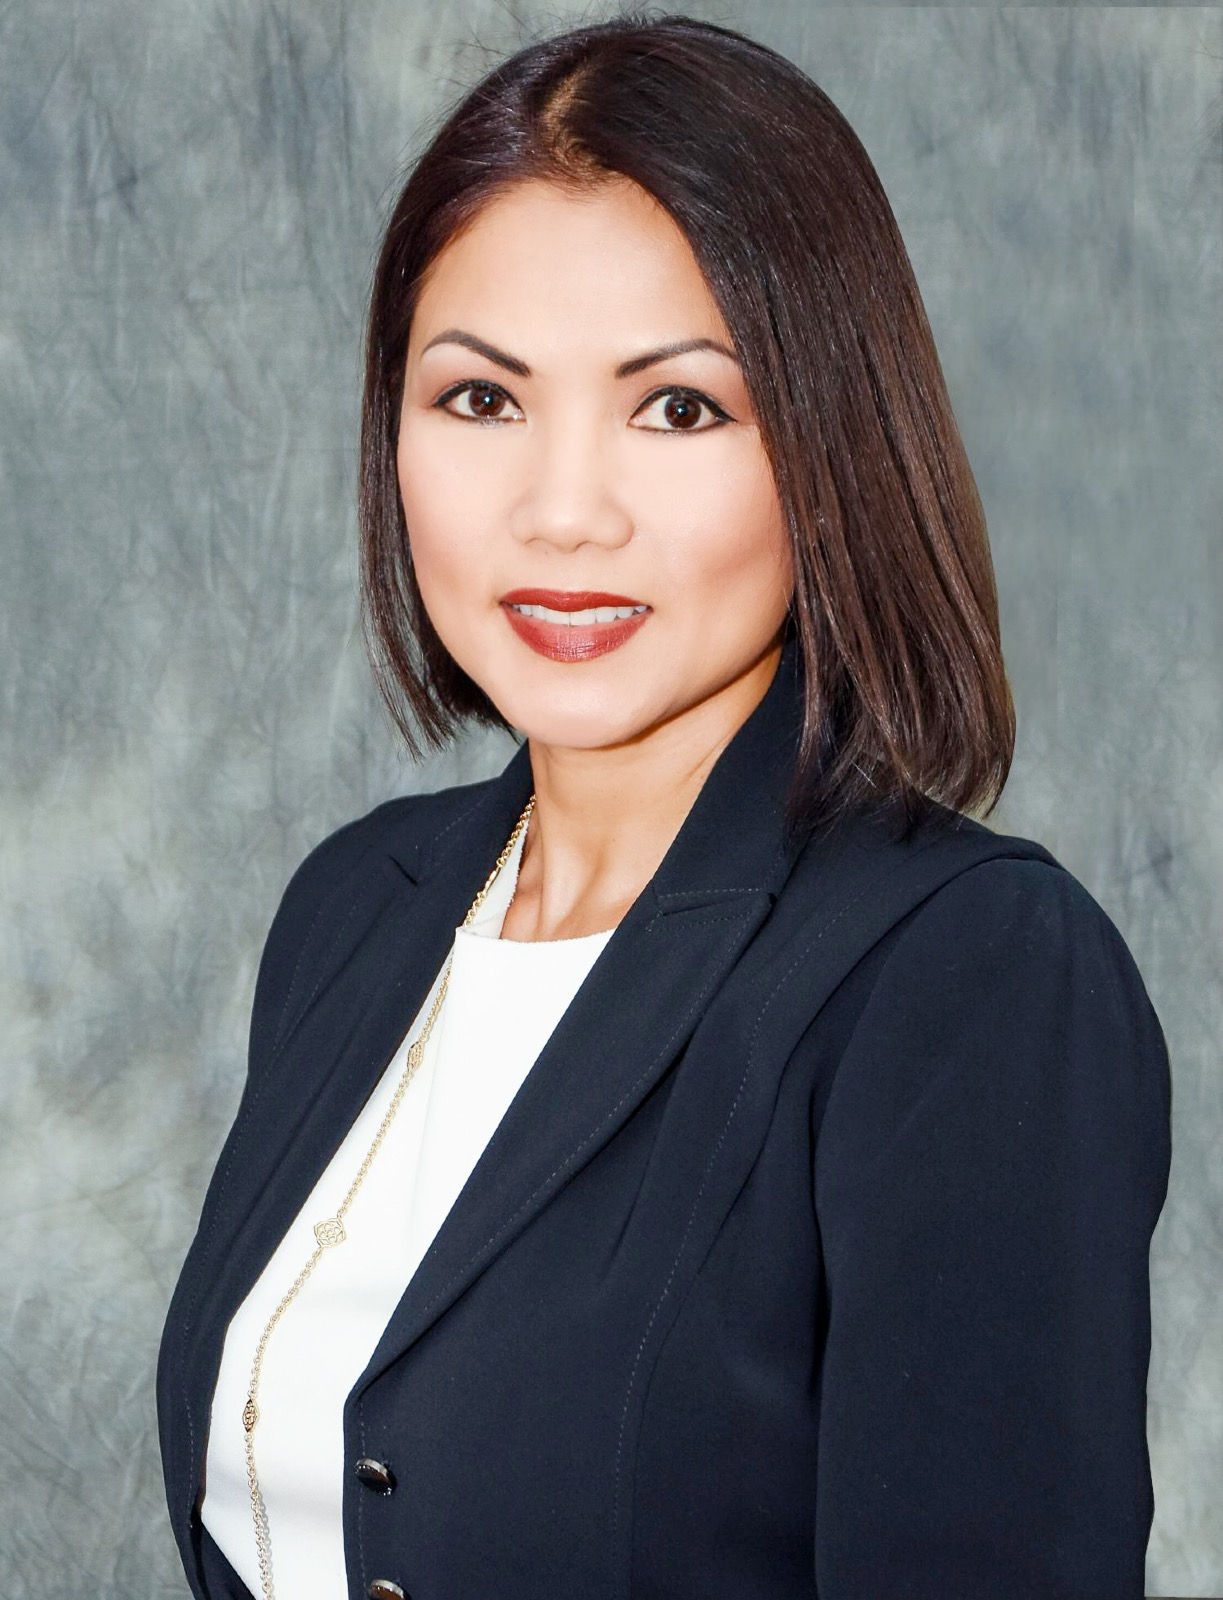 Profile Photo for Tiffanie Diep